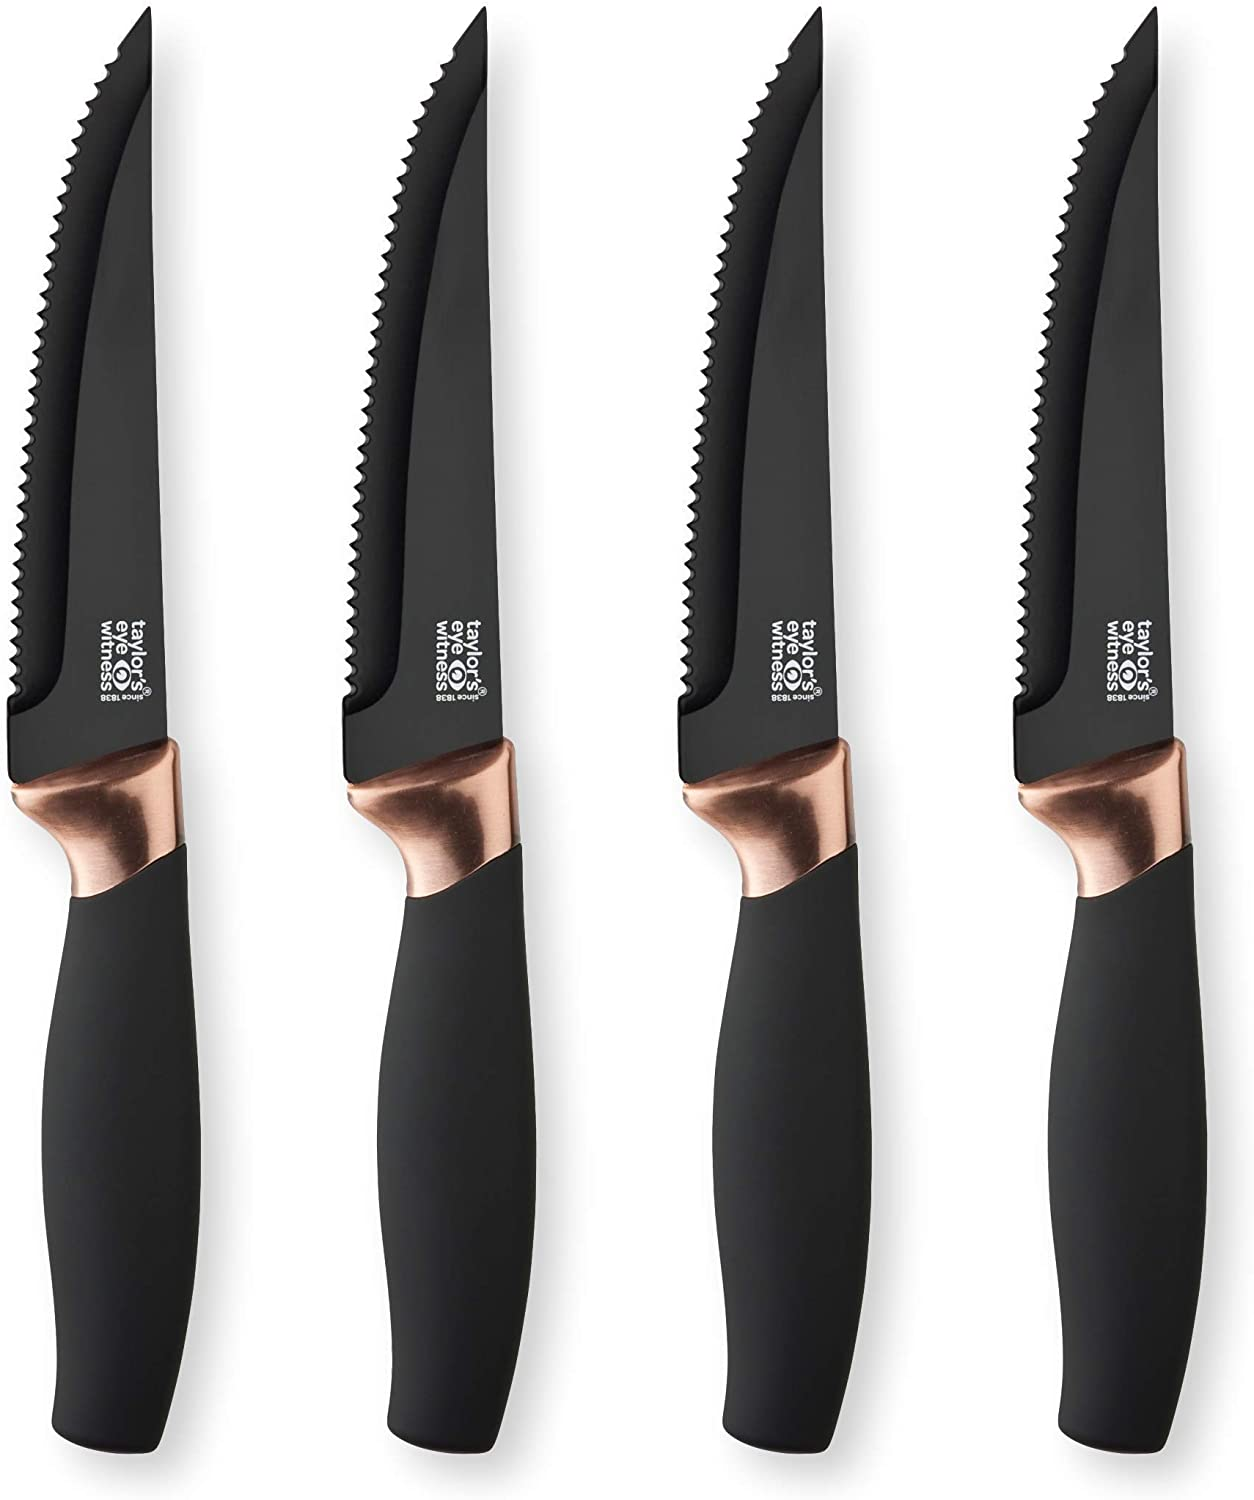 Copper Steak Knife Set